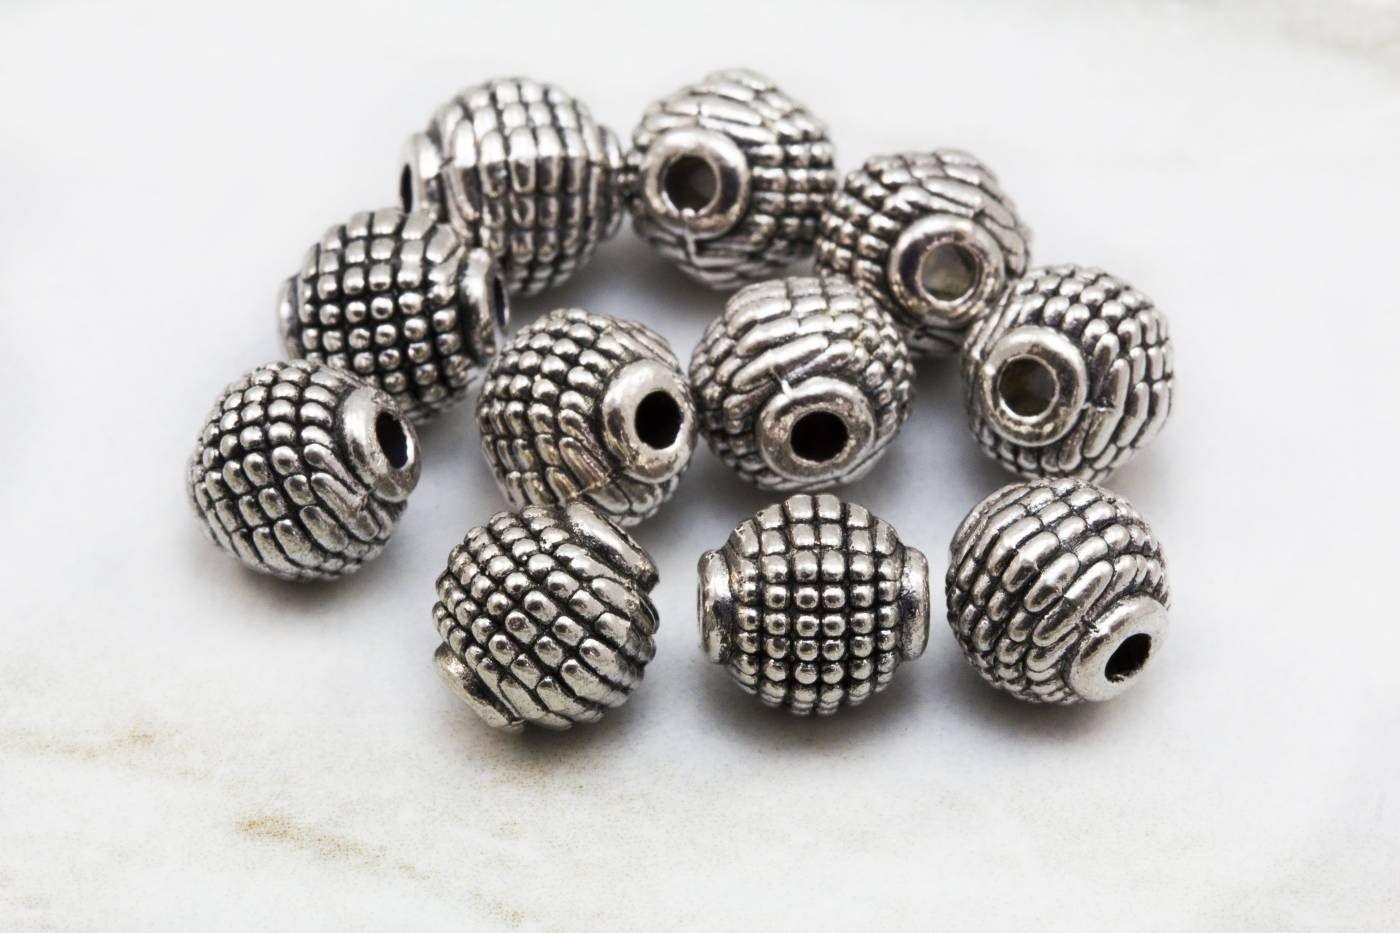 metal-round-silver-bead-jewelry-charms.jpg